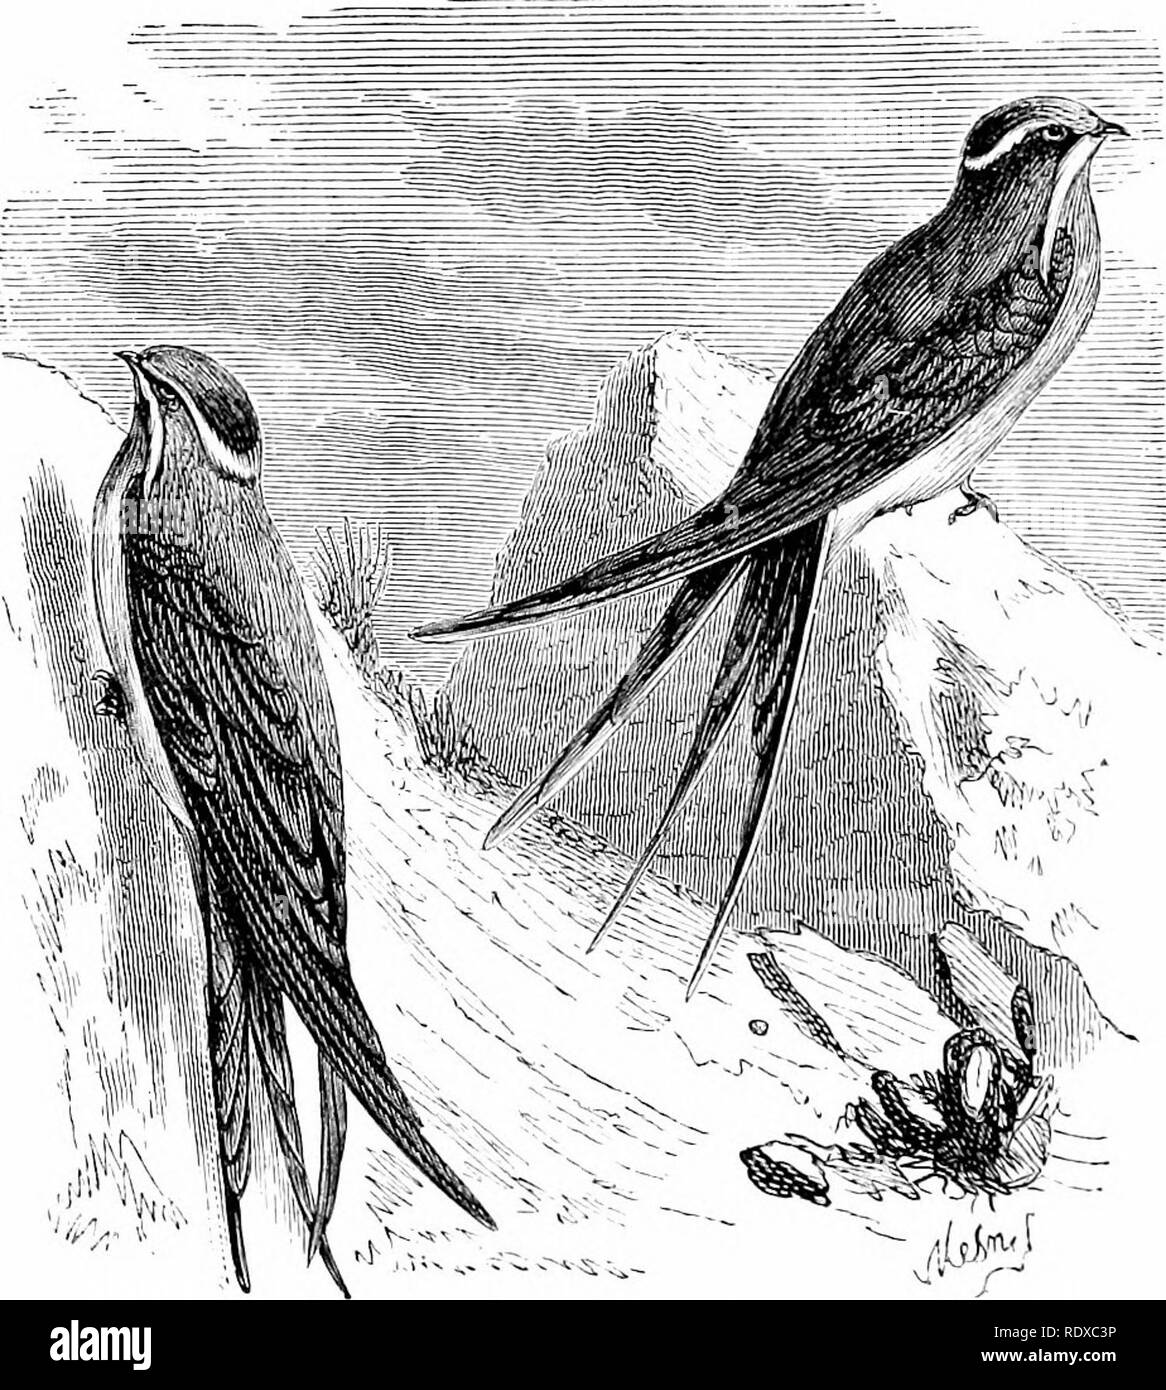 . Reptiles and birds : a popular account of their various orders : with a description of the habits and economy of the most interesting . Birds; Reptiles. 0.36 PASSERINES. services they render in destrojdng vast quantities of noxious insects, not to speak of their gentle habits, mutual attachment to each other, and the happy presage they bring with them of spring's advent, contribute to make them welcome visitors. JSTevertheless there are instances where these proper sentiments yield to the love of destruction—where their innocent confidence is rewarded by death. Swallows generally have the br - Stock Image